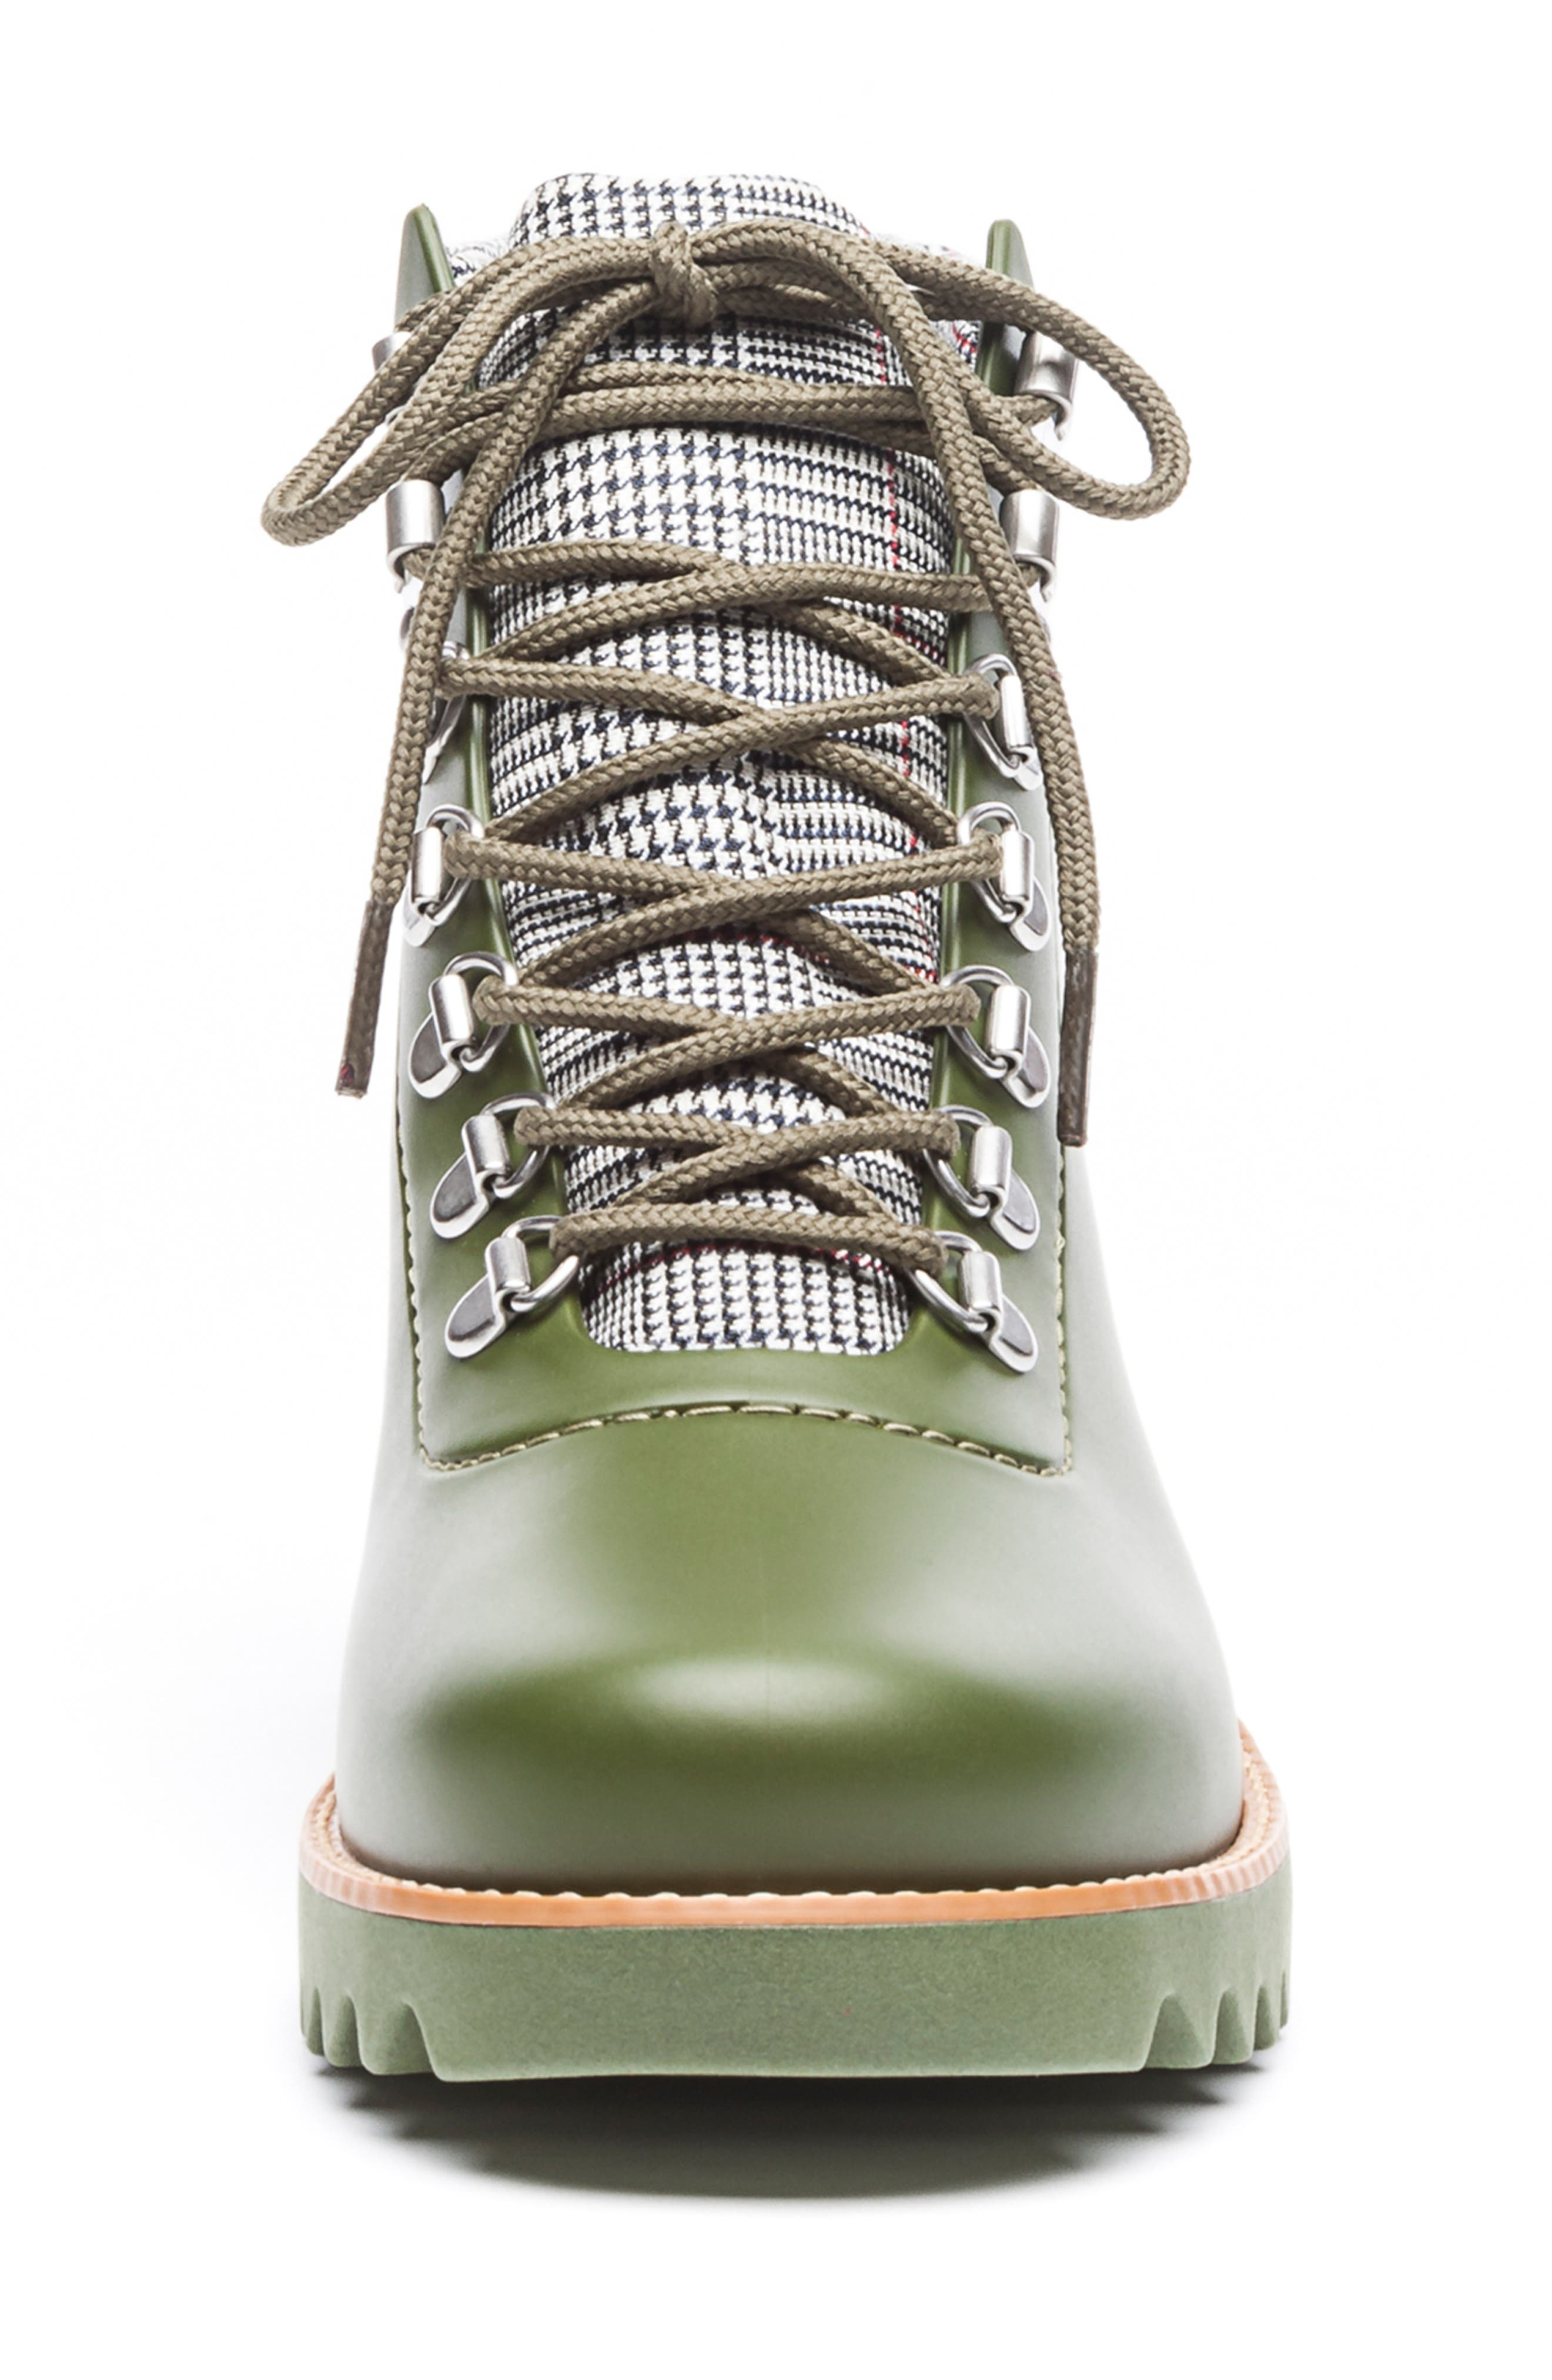 BERNARDO, Winnie Waterproof Rain Bootie, Alternate thumbnail 4, color, MILITARY GREEN